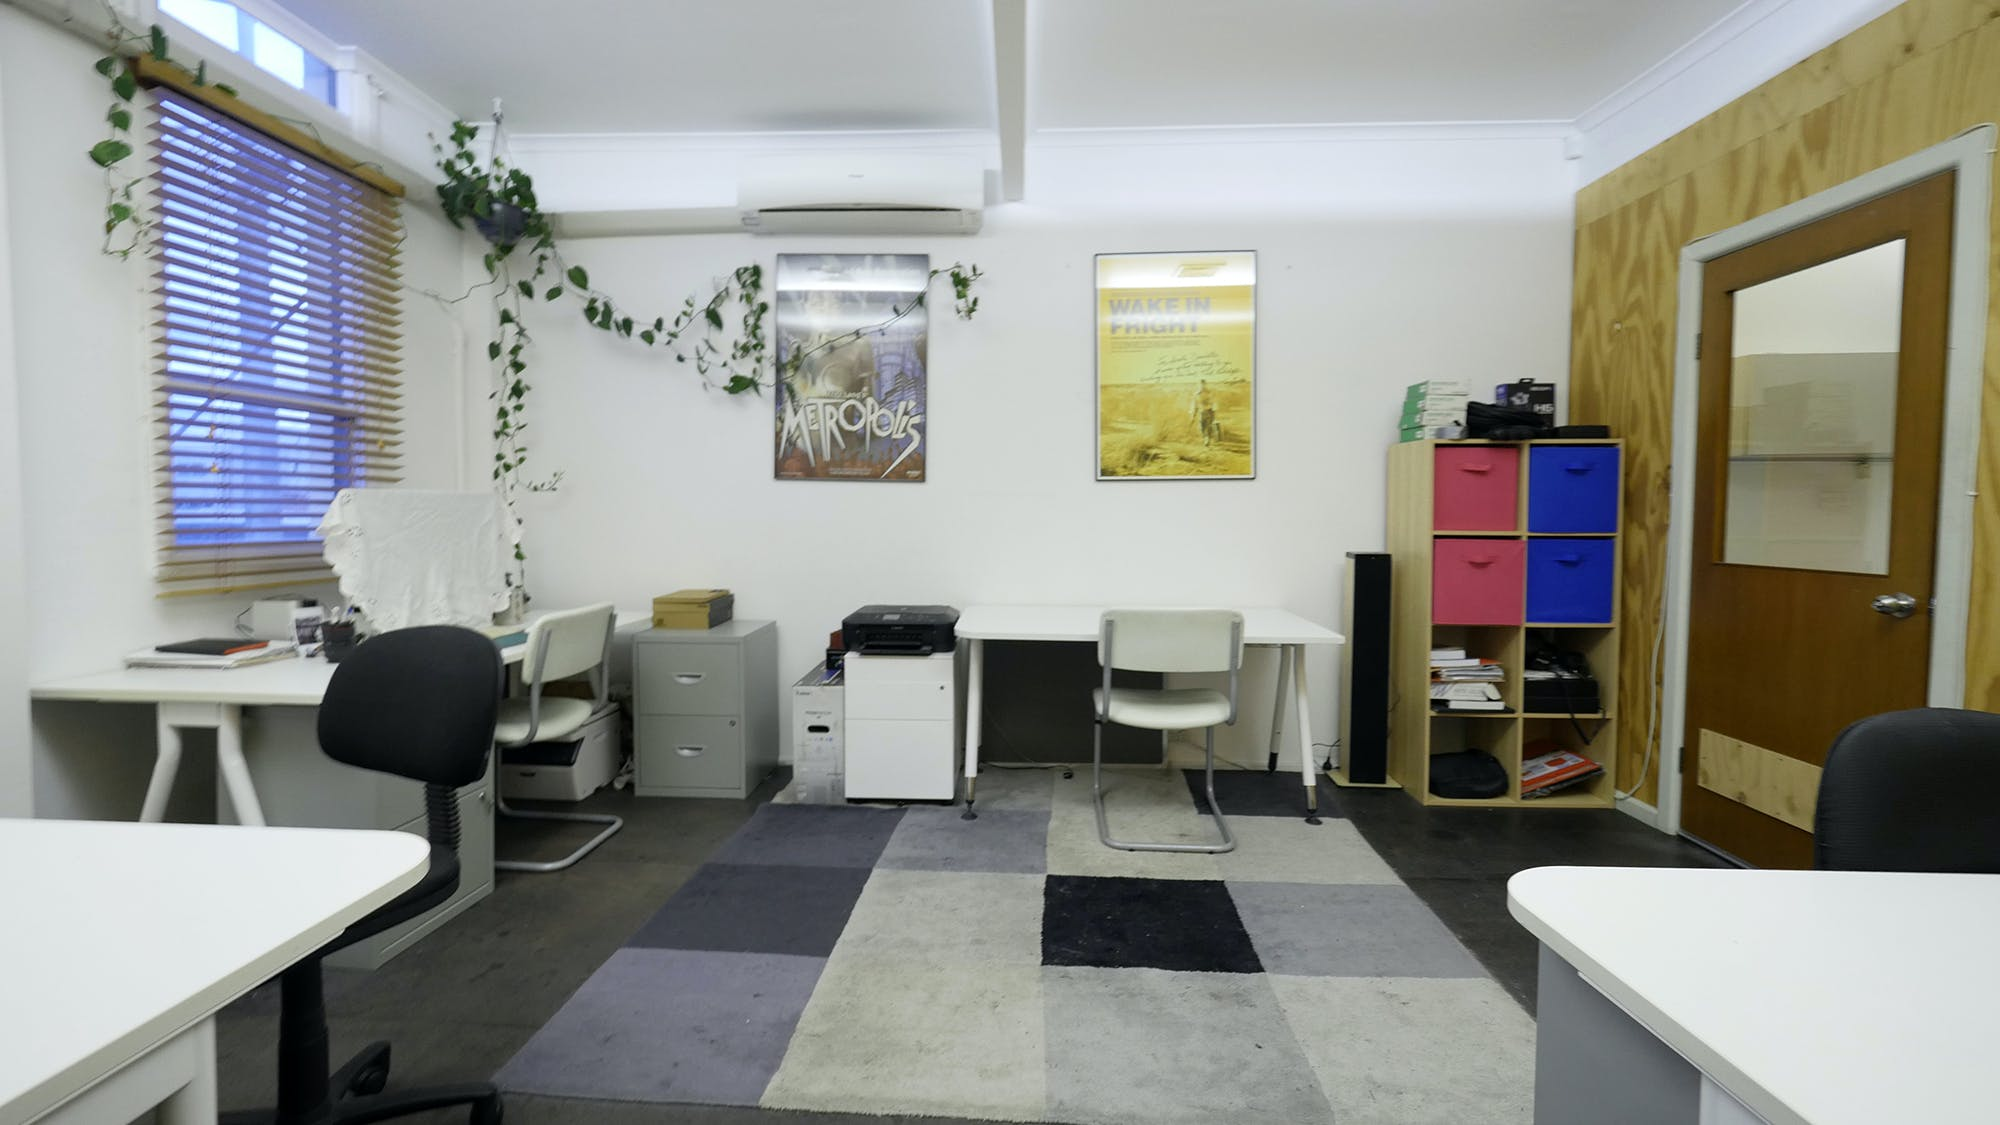 Co-working space, shared office at Atticus media, image 1